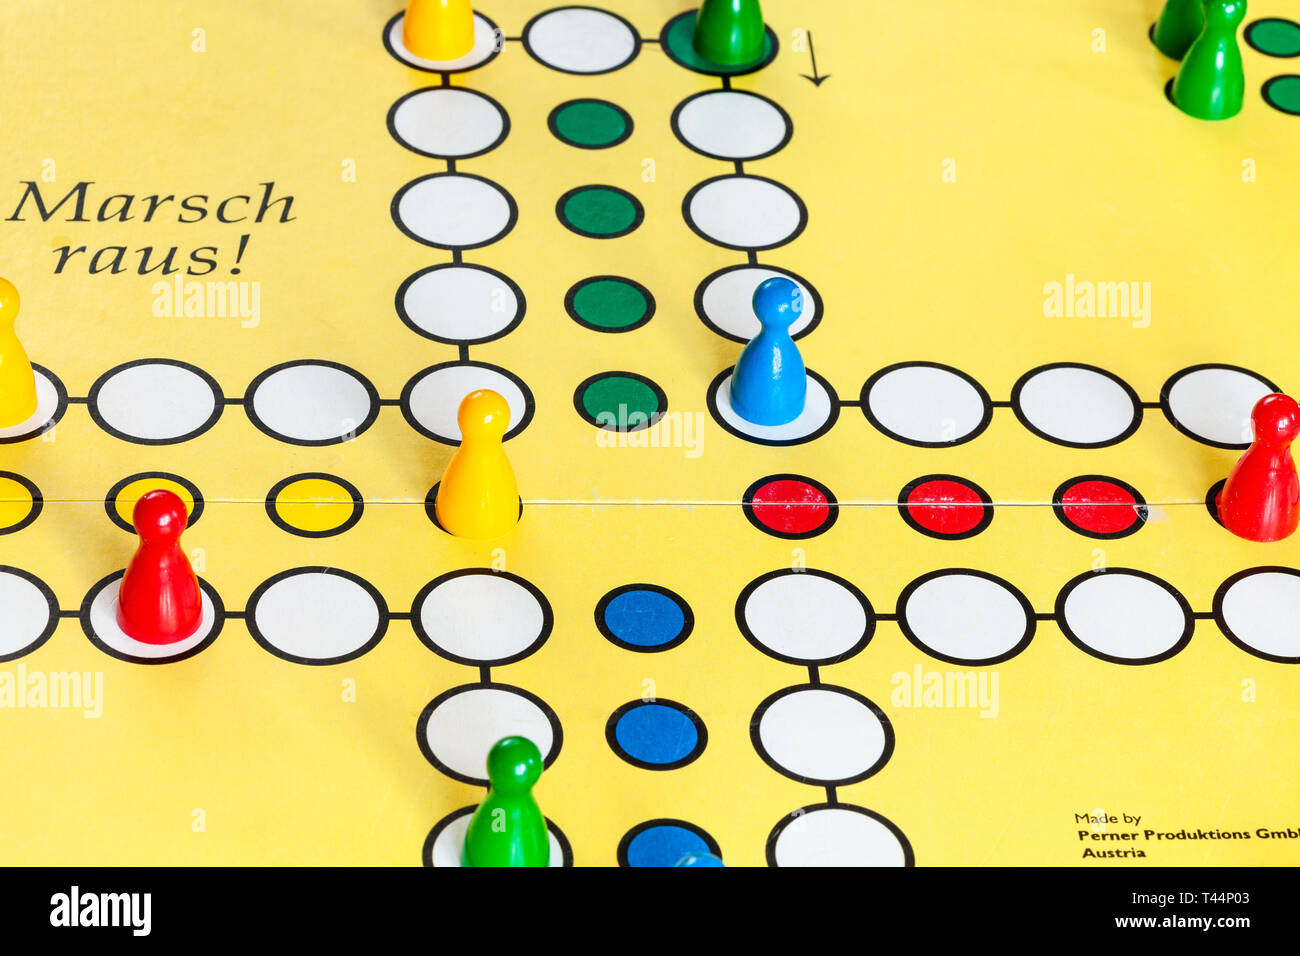 MOSCOW, RUSSIA - APRIL 2, 2019: gameboard of Marsch Raus ! board game close up. This board game is Cross and circle game, an adaptation of the medieva - Stock Image